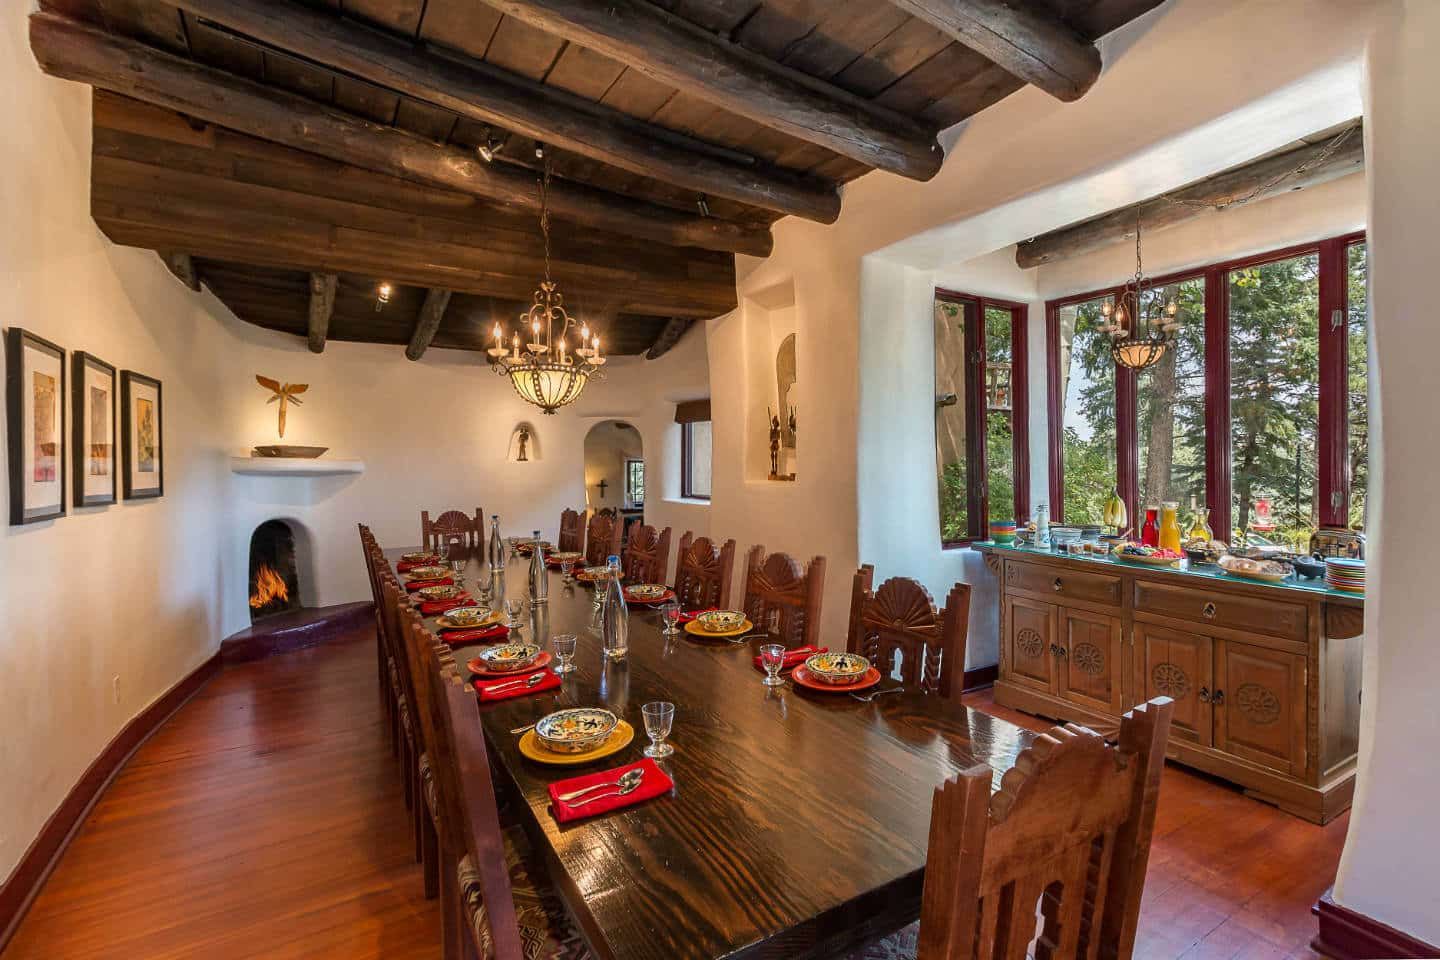 Santa Fe B&B Dining Room